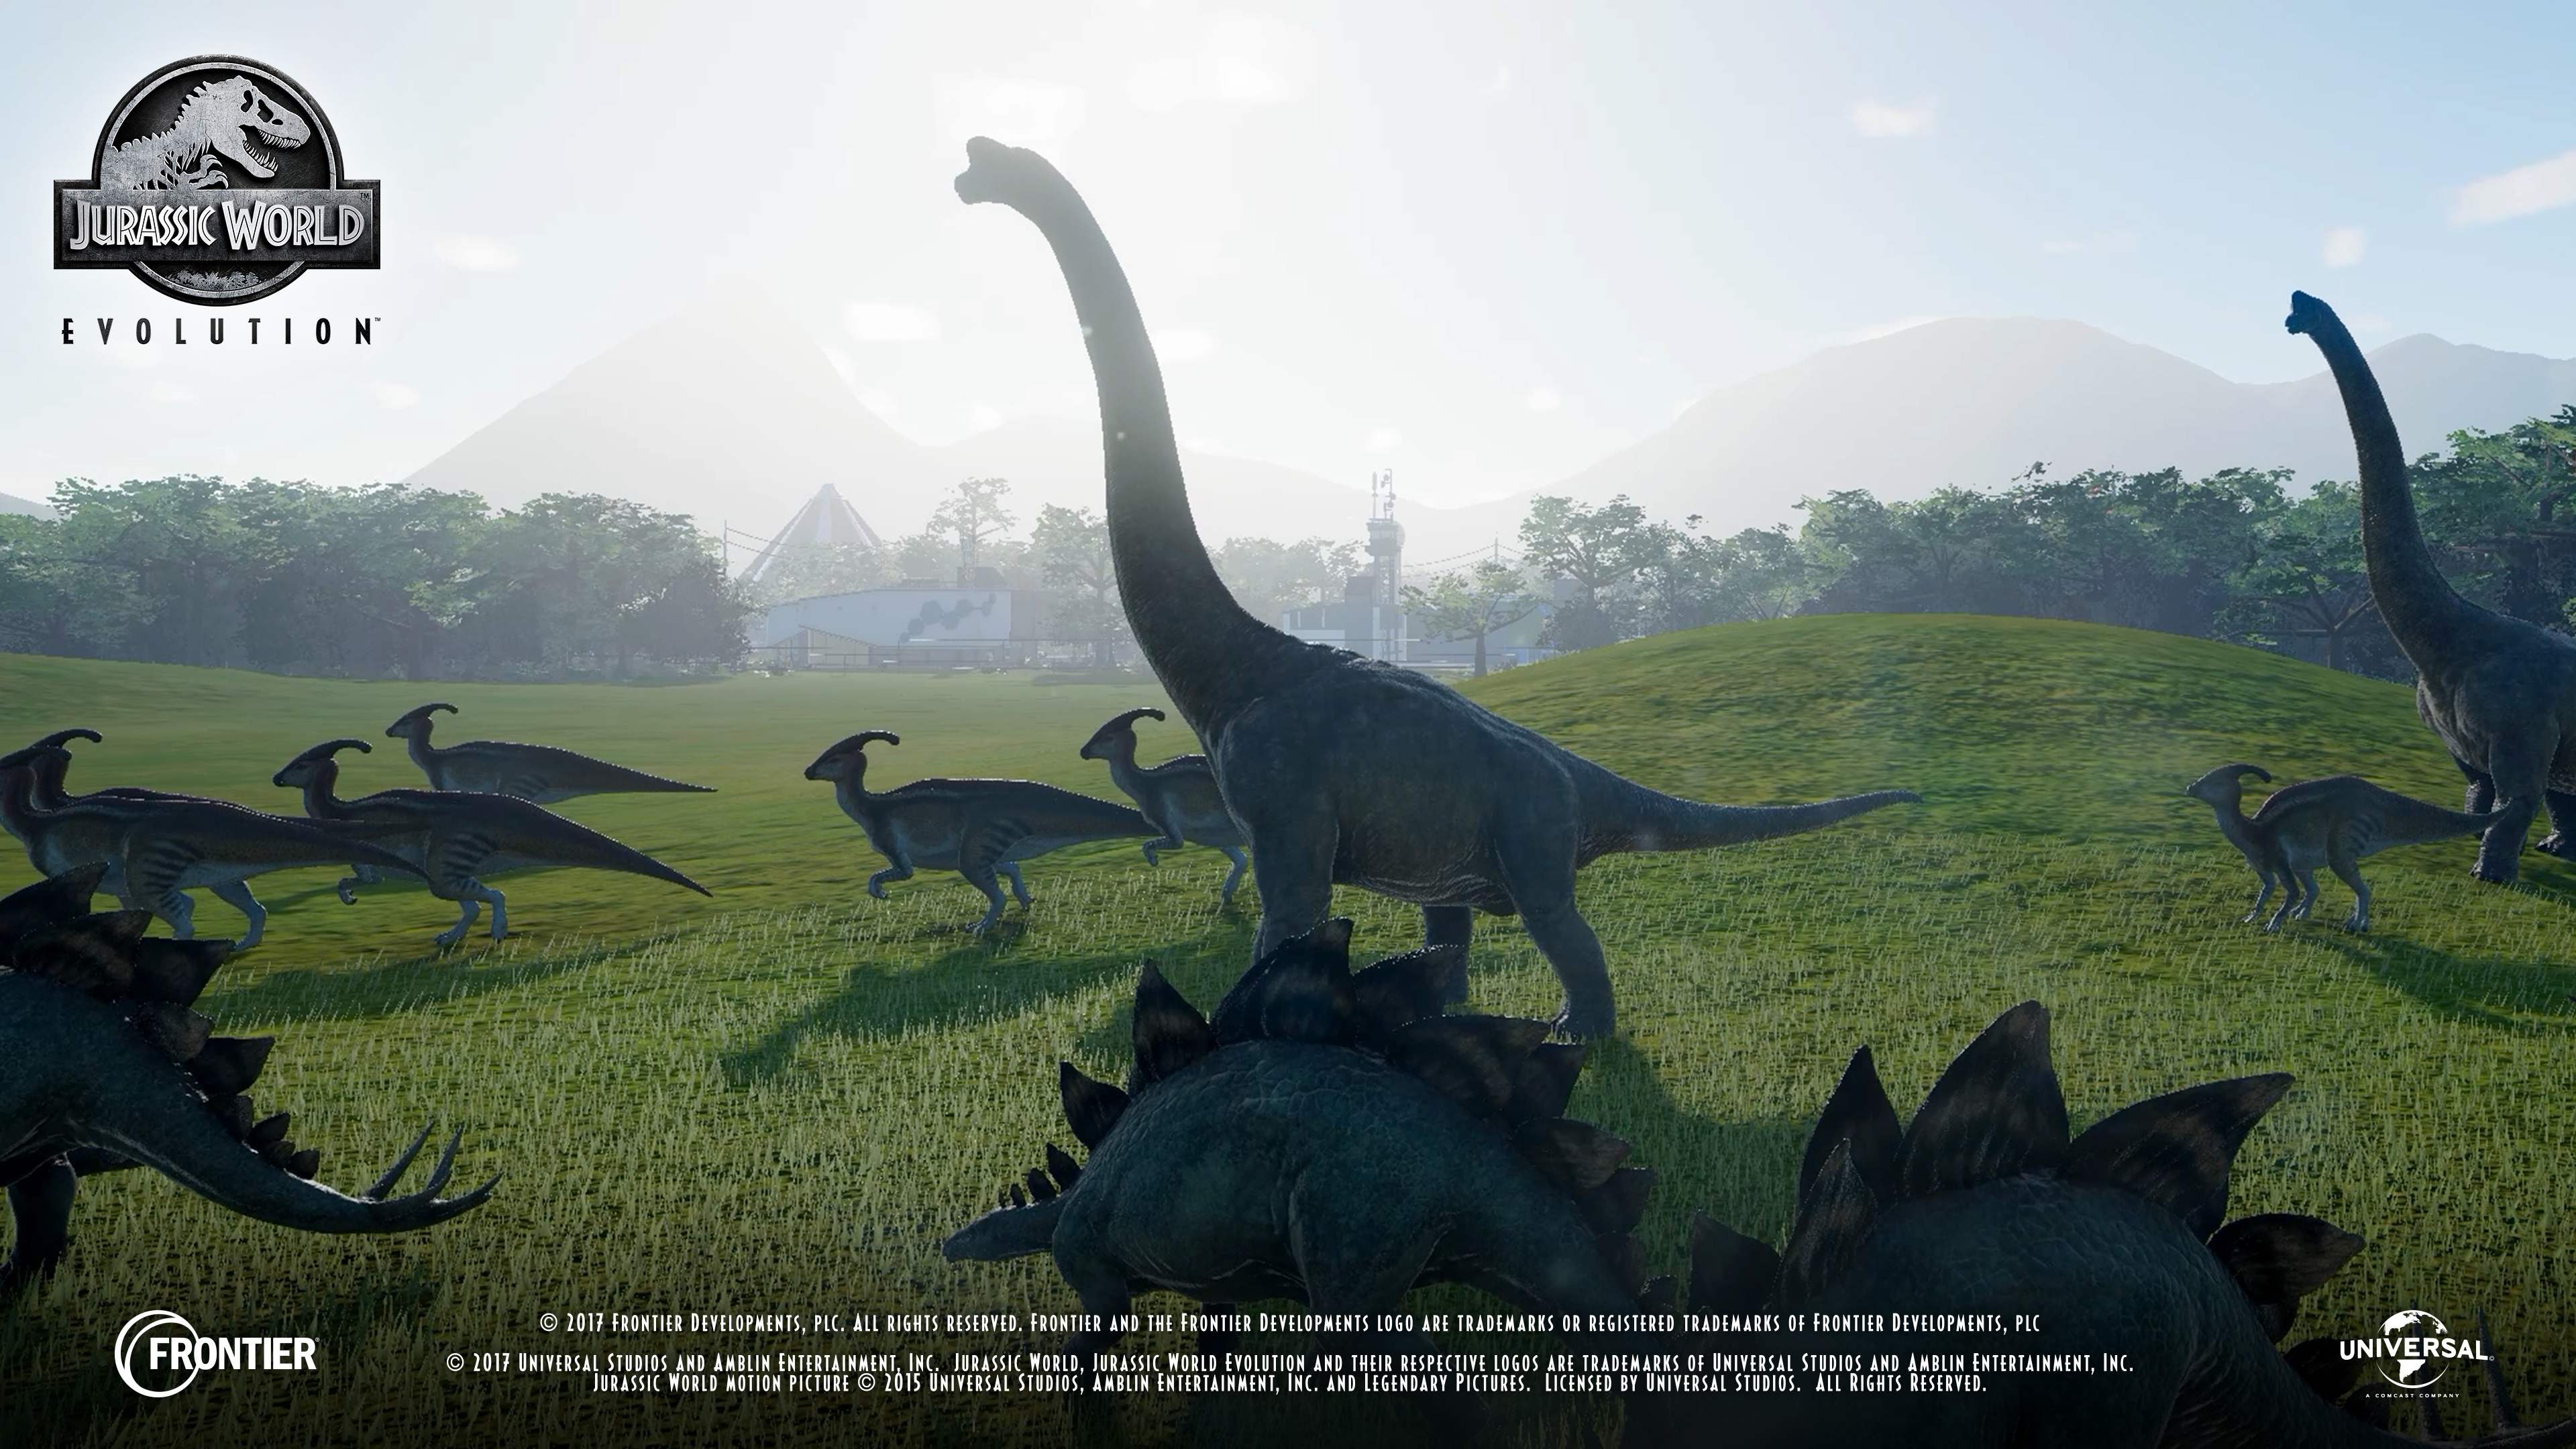 https://crackyourgames.fr/cracks/jurassic-world-evolution-2/